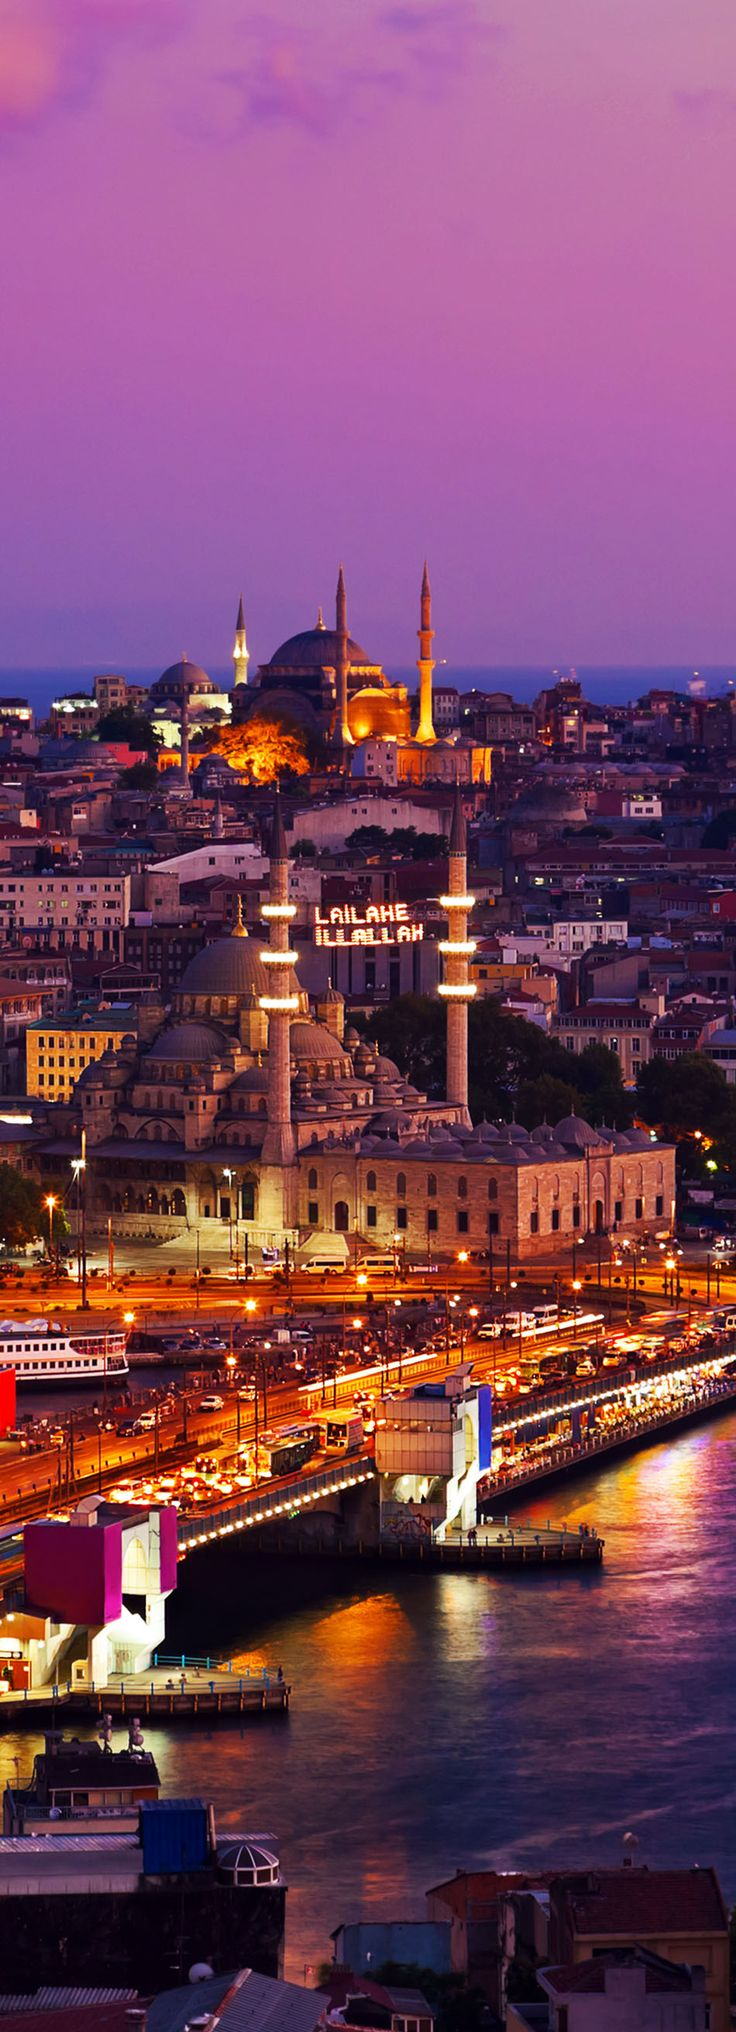 Istanbul at Sunset, Turkey | Top 11 Reasons to Visit Istanbul https://sites.google.com/site/hotelsandtravela/beautiful-bodrum-turkey